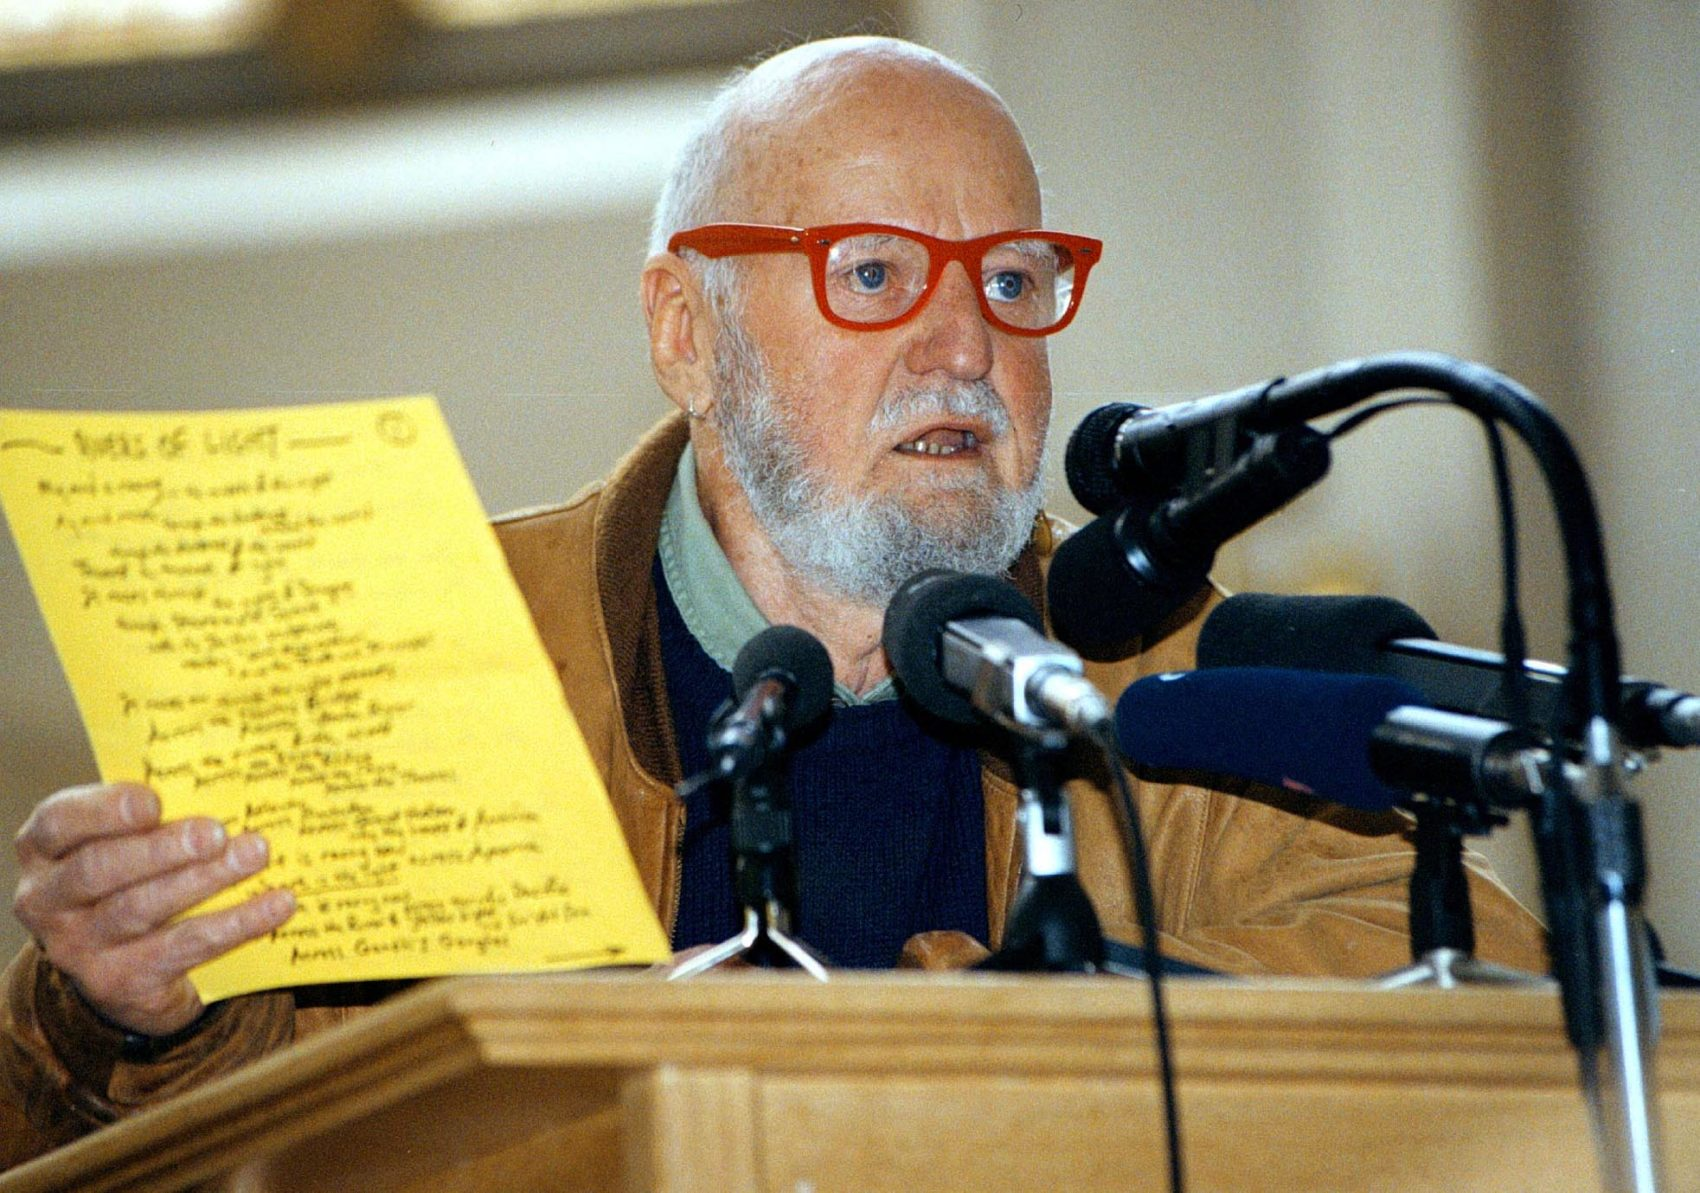 Iconic Poet And Activist Lawrence Ferlinghetti Turns 100